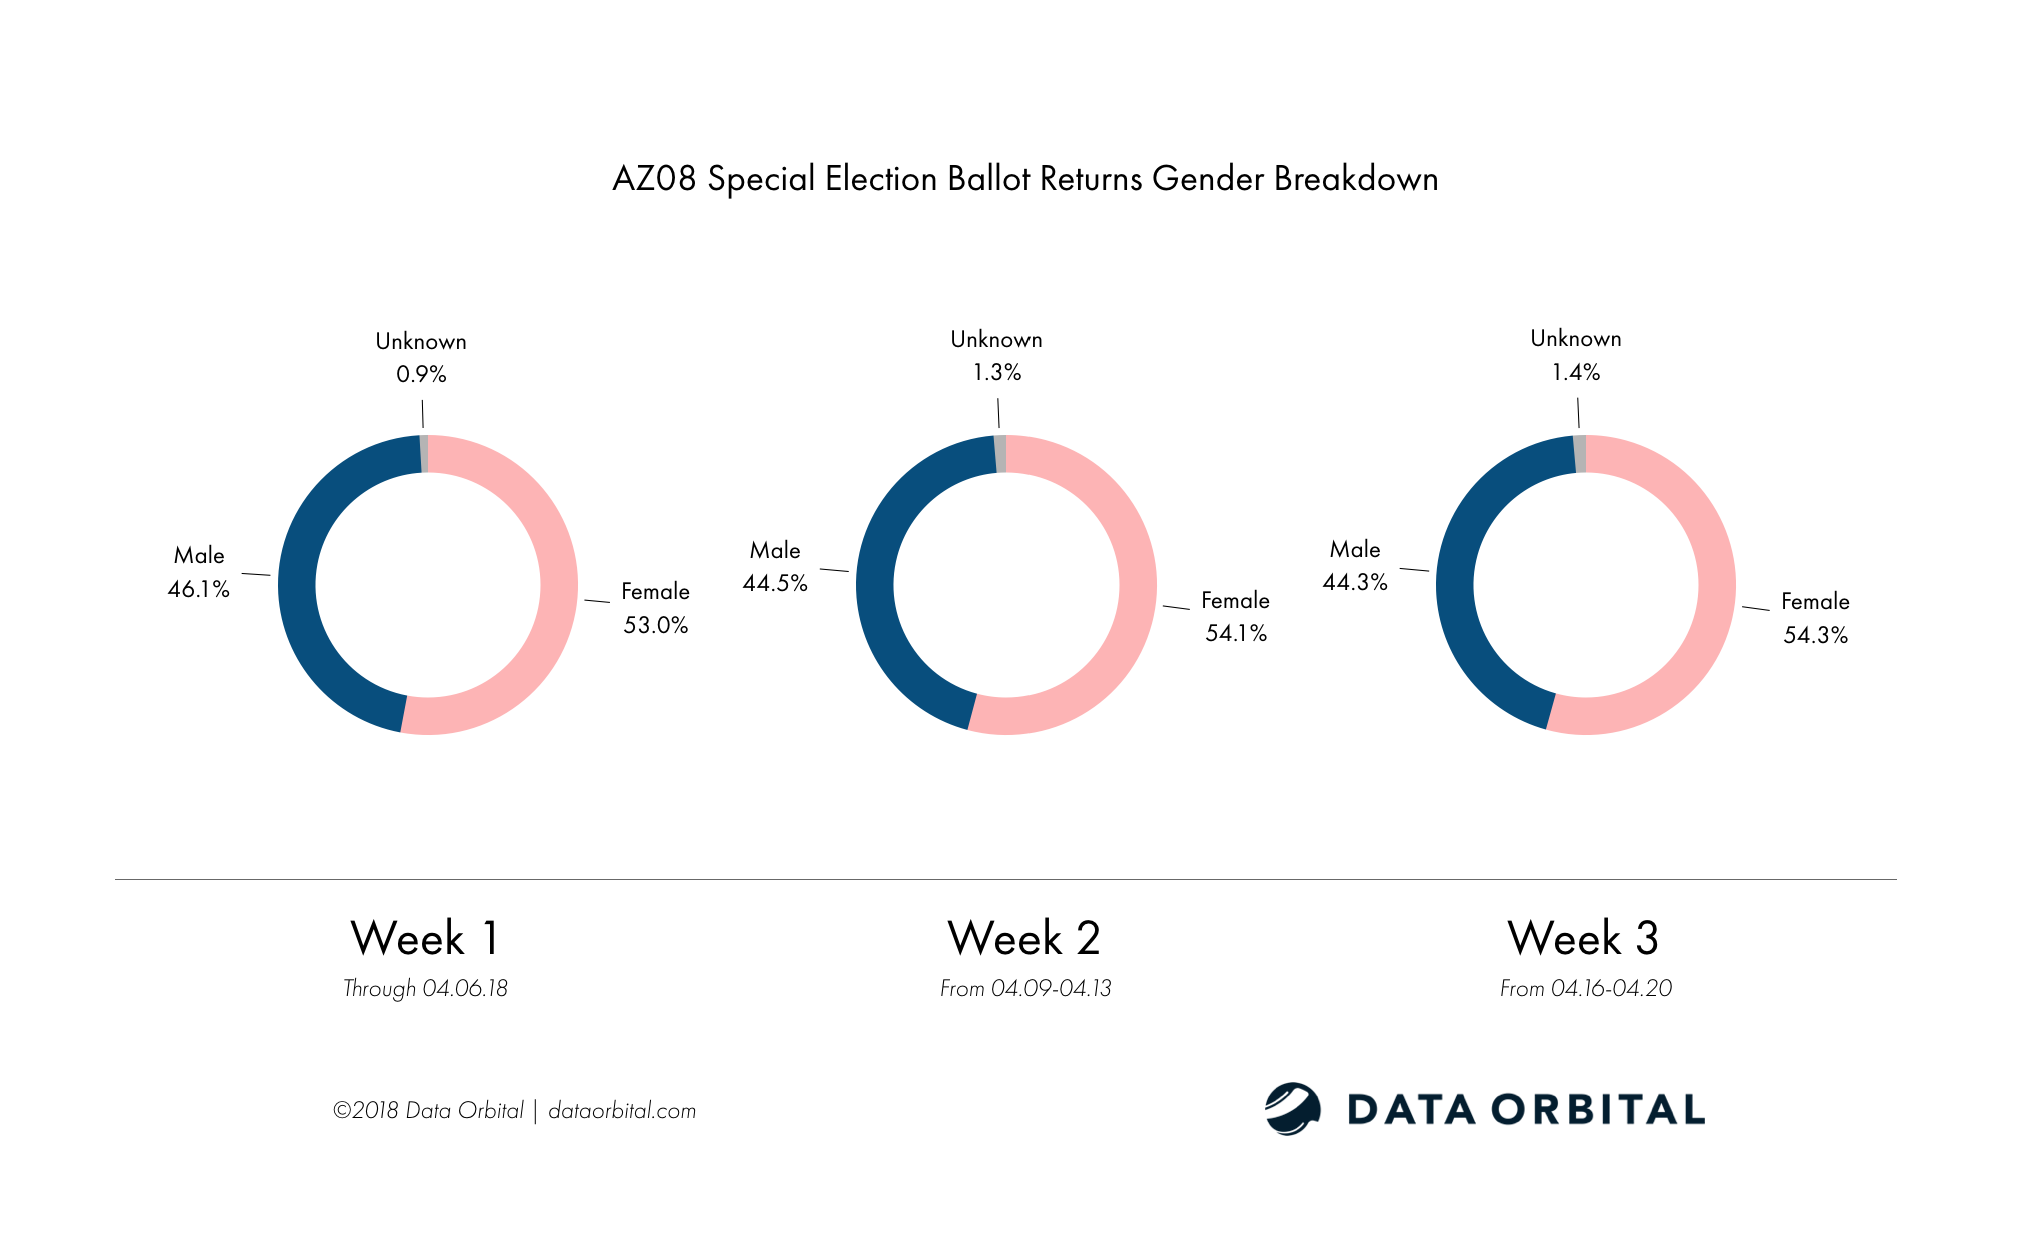 AZ08 Special Election Ballot Returns Week 3 Wrap Up and Analysis Gender